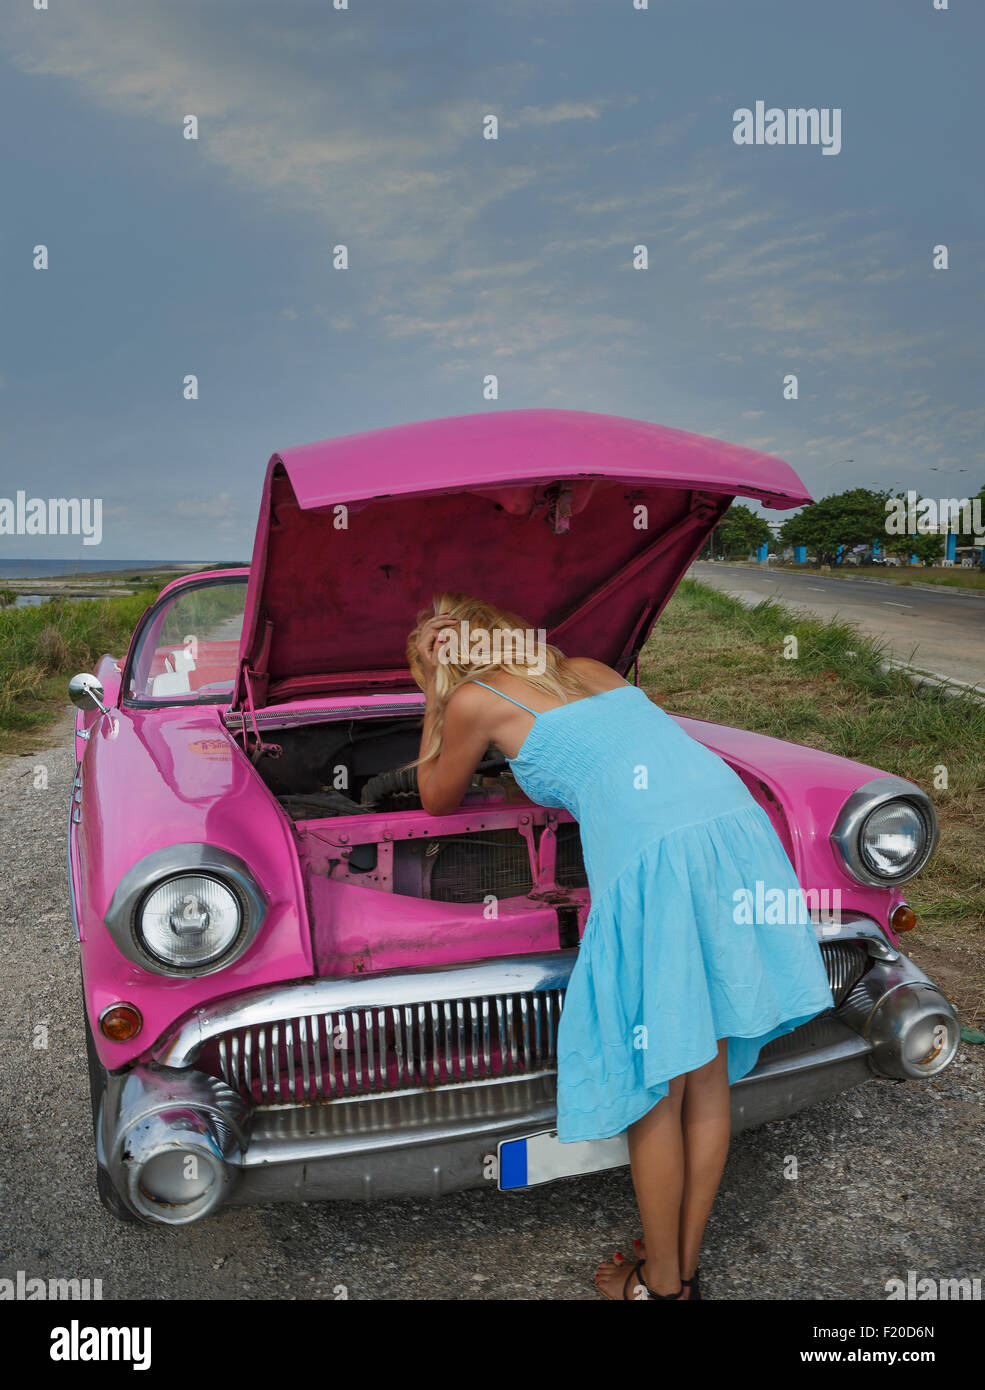 Young woman trying to fix a vintage convertible at coast, Havana, Cuba - Stock Image